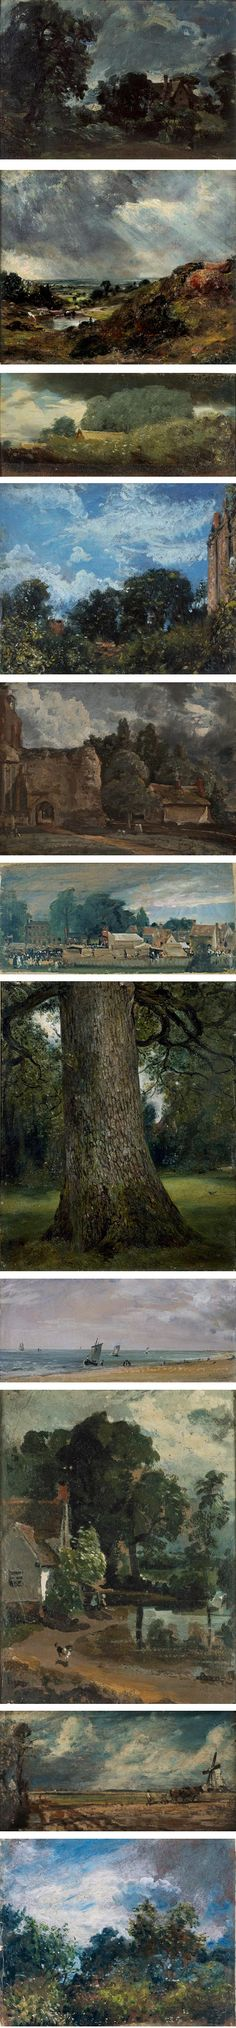 John Constable (1776-1837), English landscape painter. Preferred to sketch from nature rather than creating scenes from his imagination.